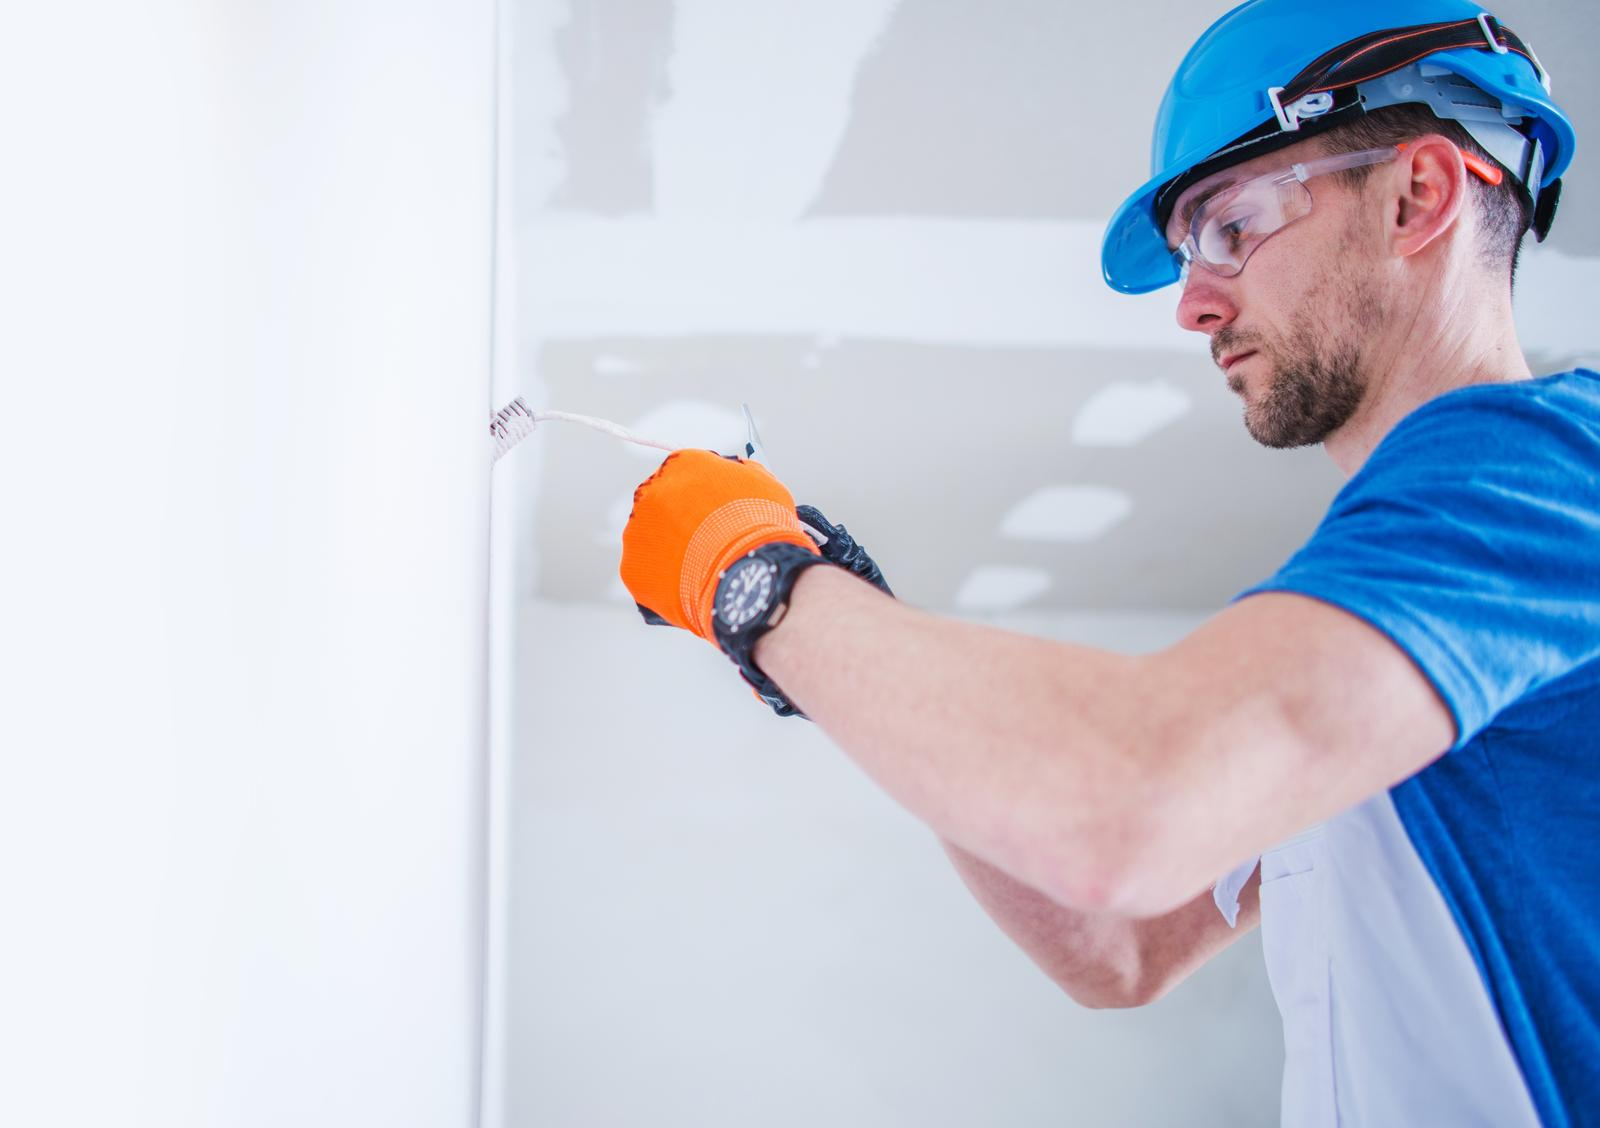 Installation of electrical wiring and fittings in Pärnu county